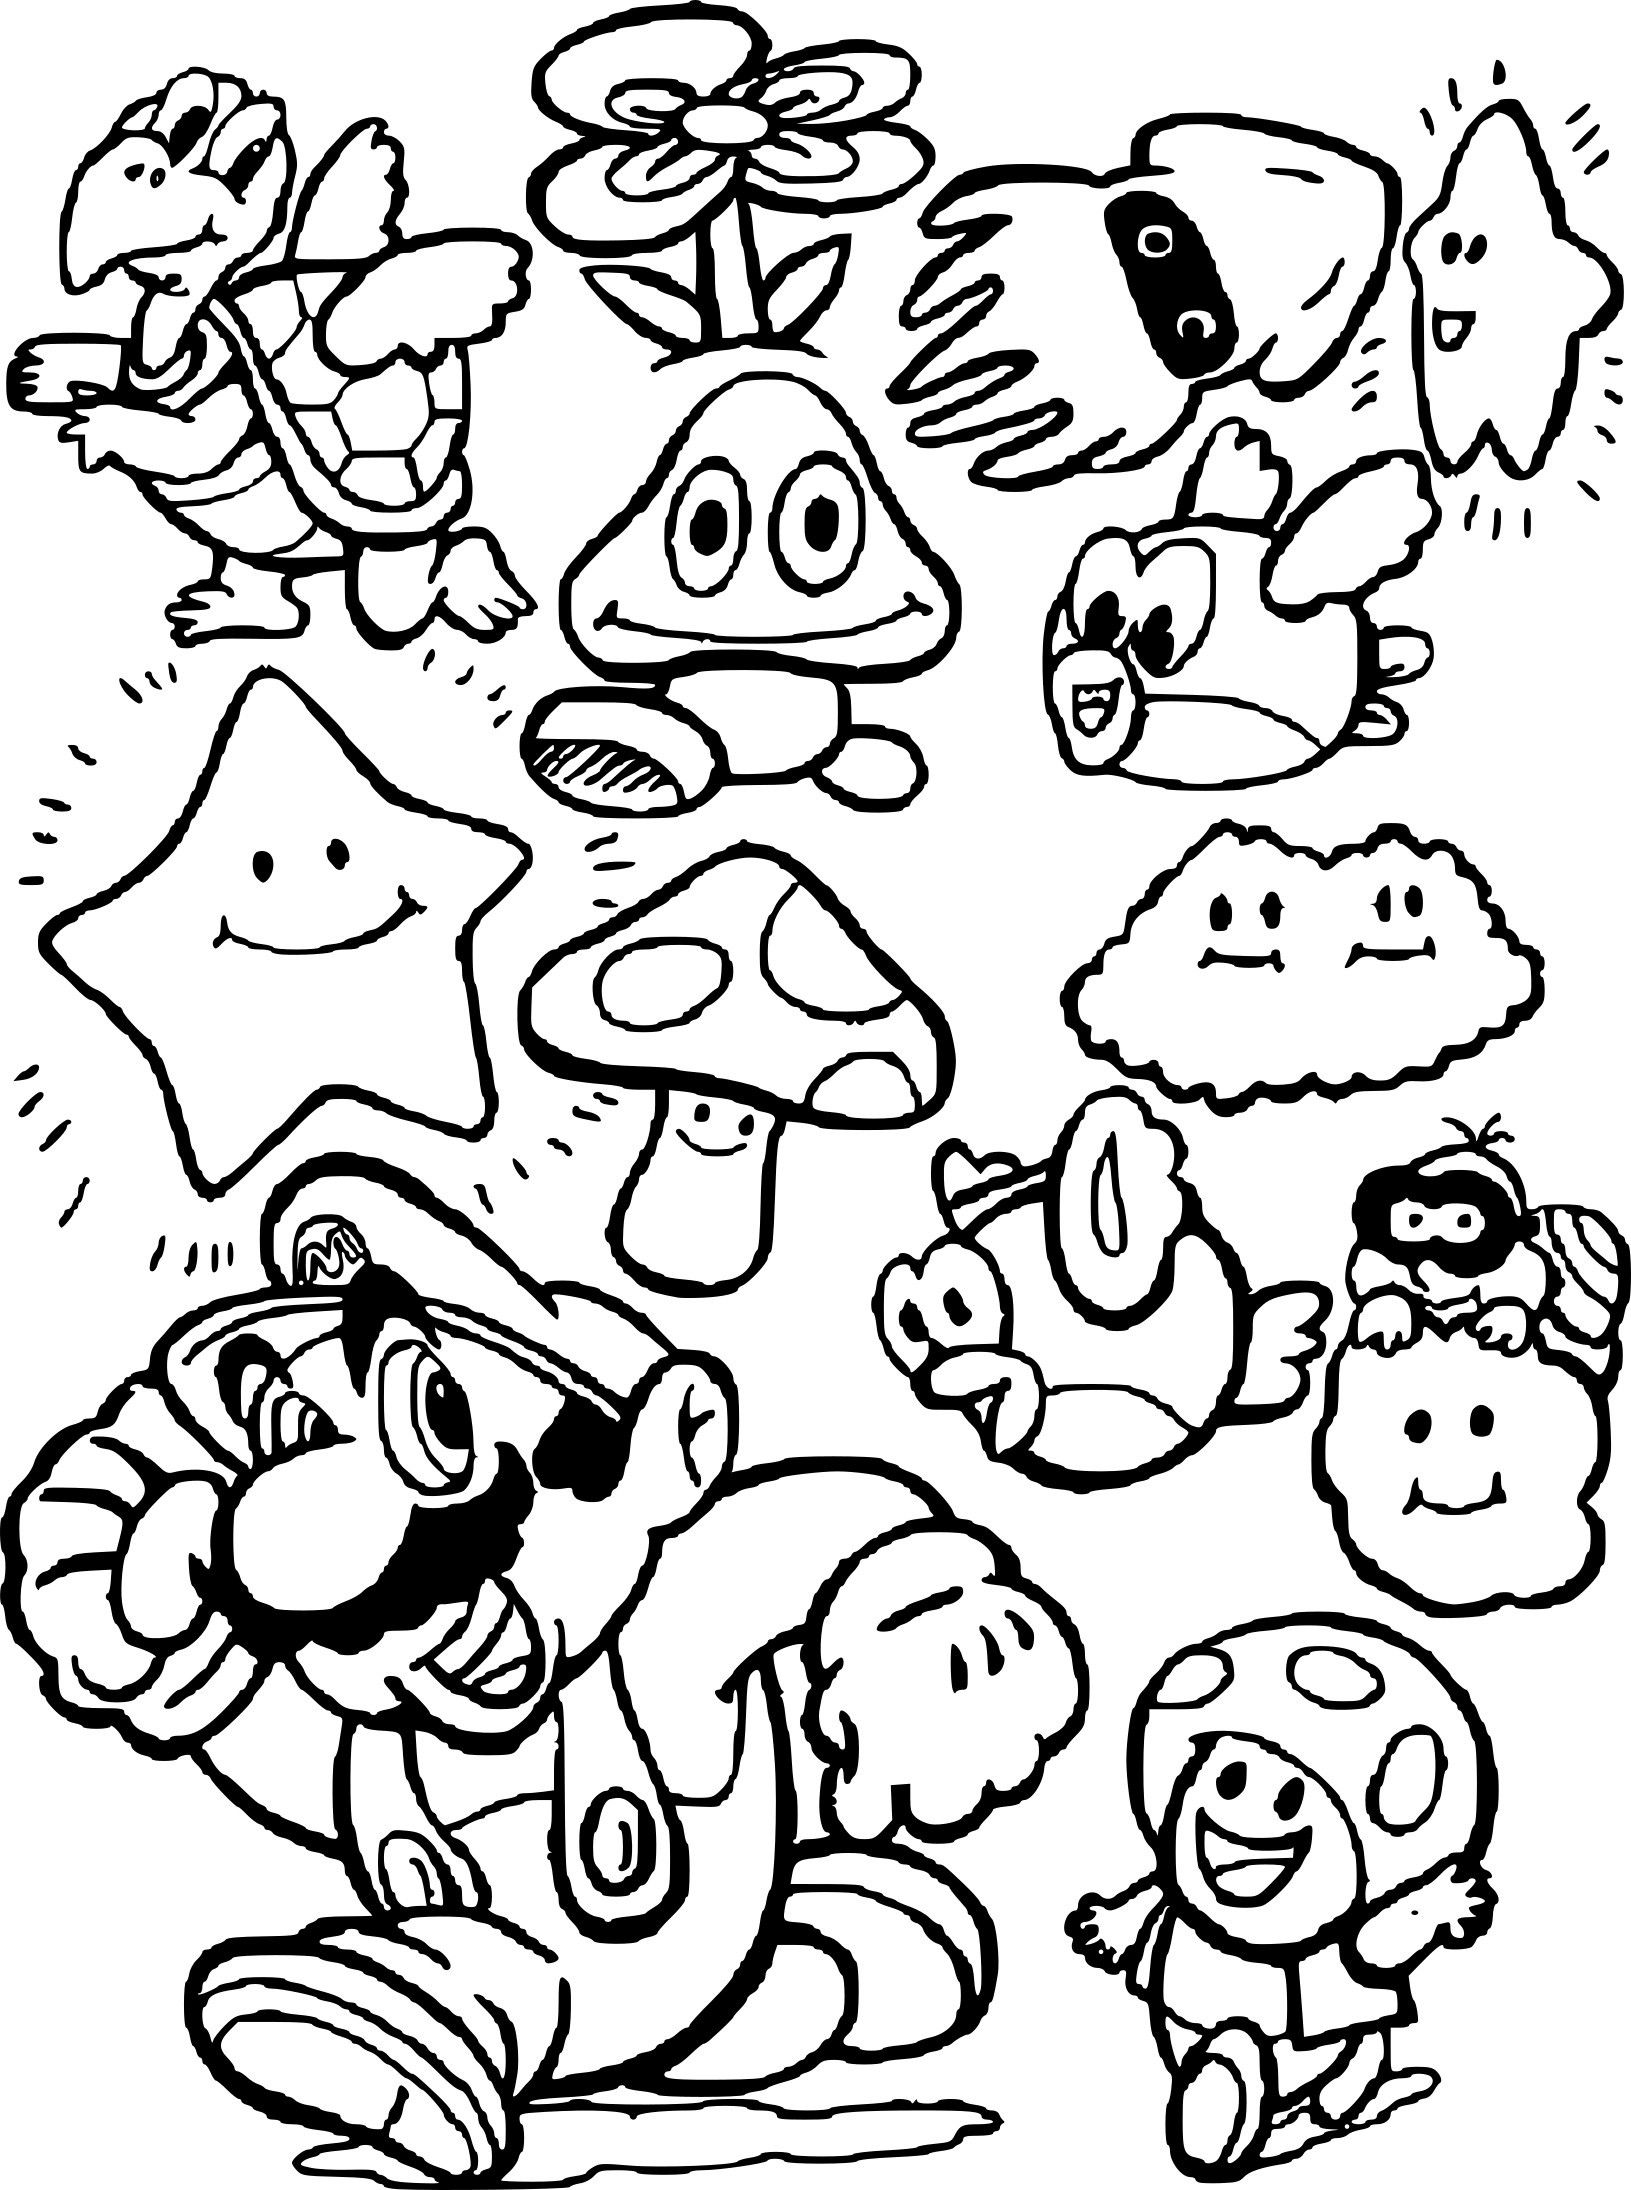 Daisy S Coloring Page In Mario